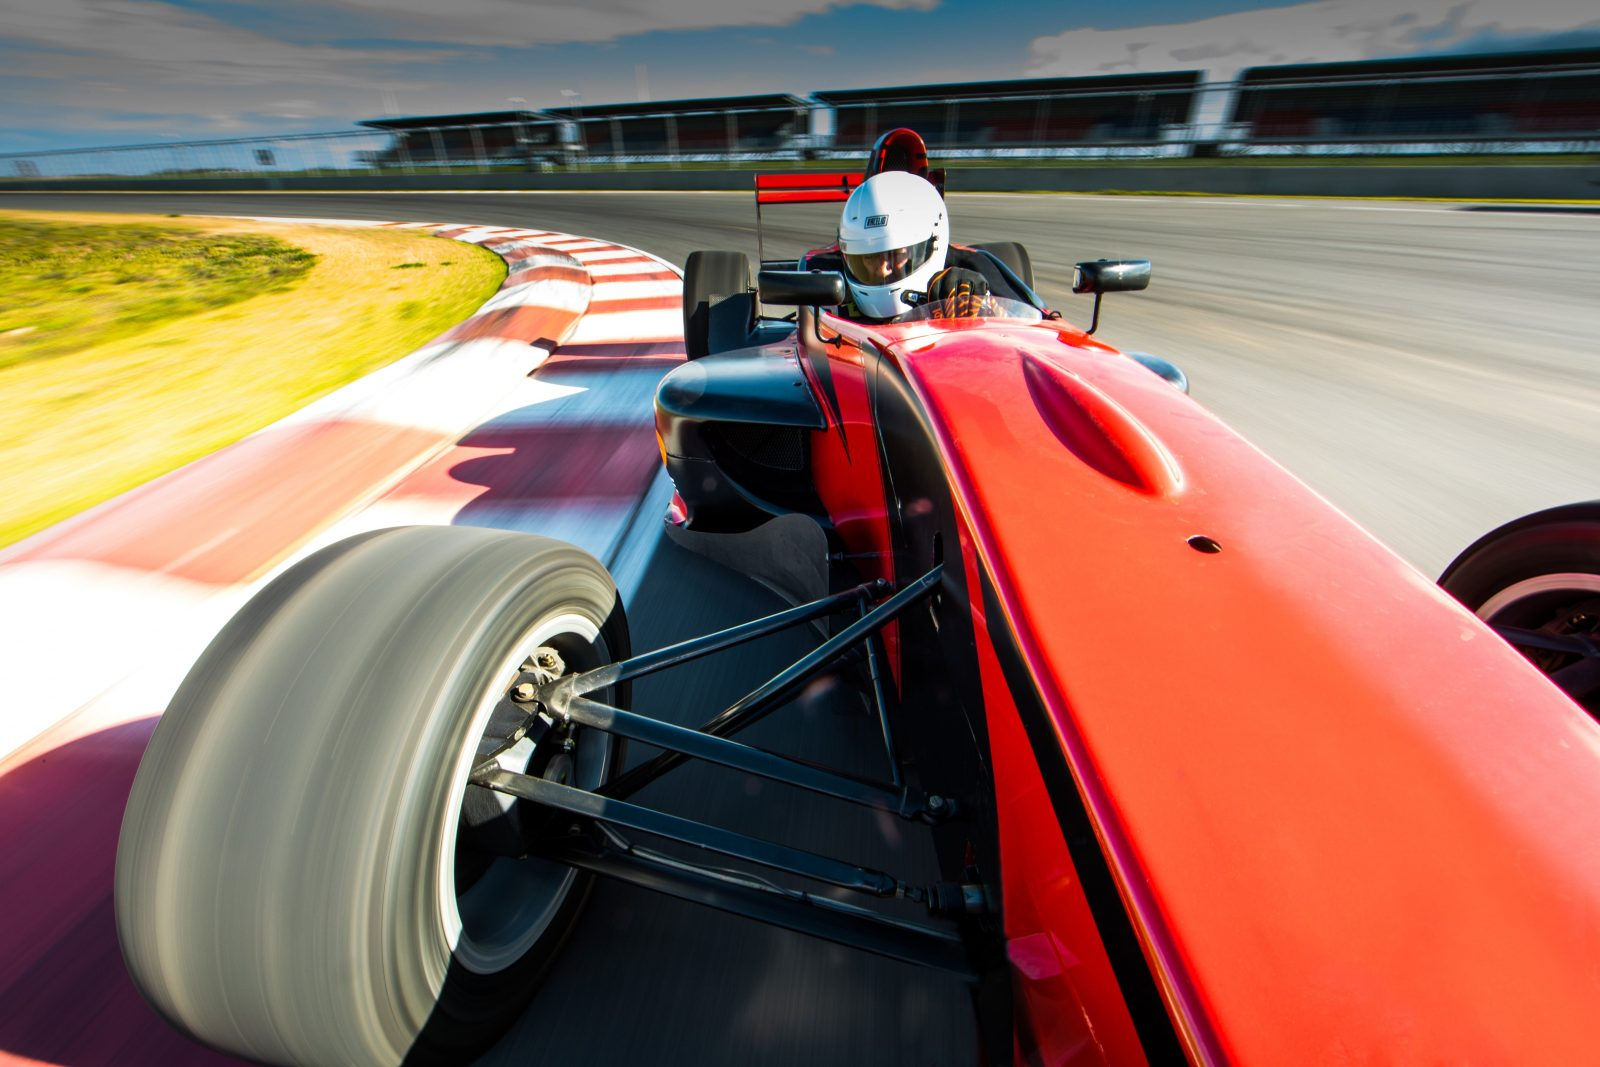 The Bend Driver Experience Formula